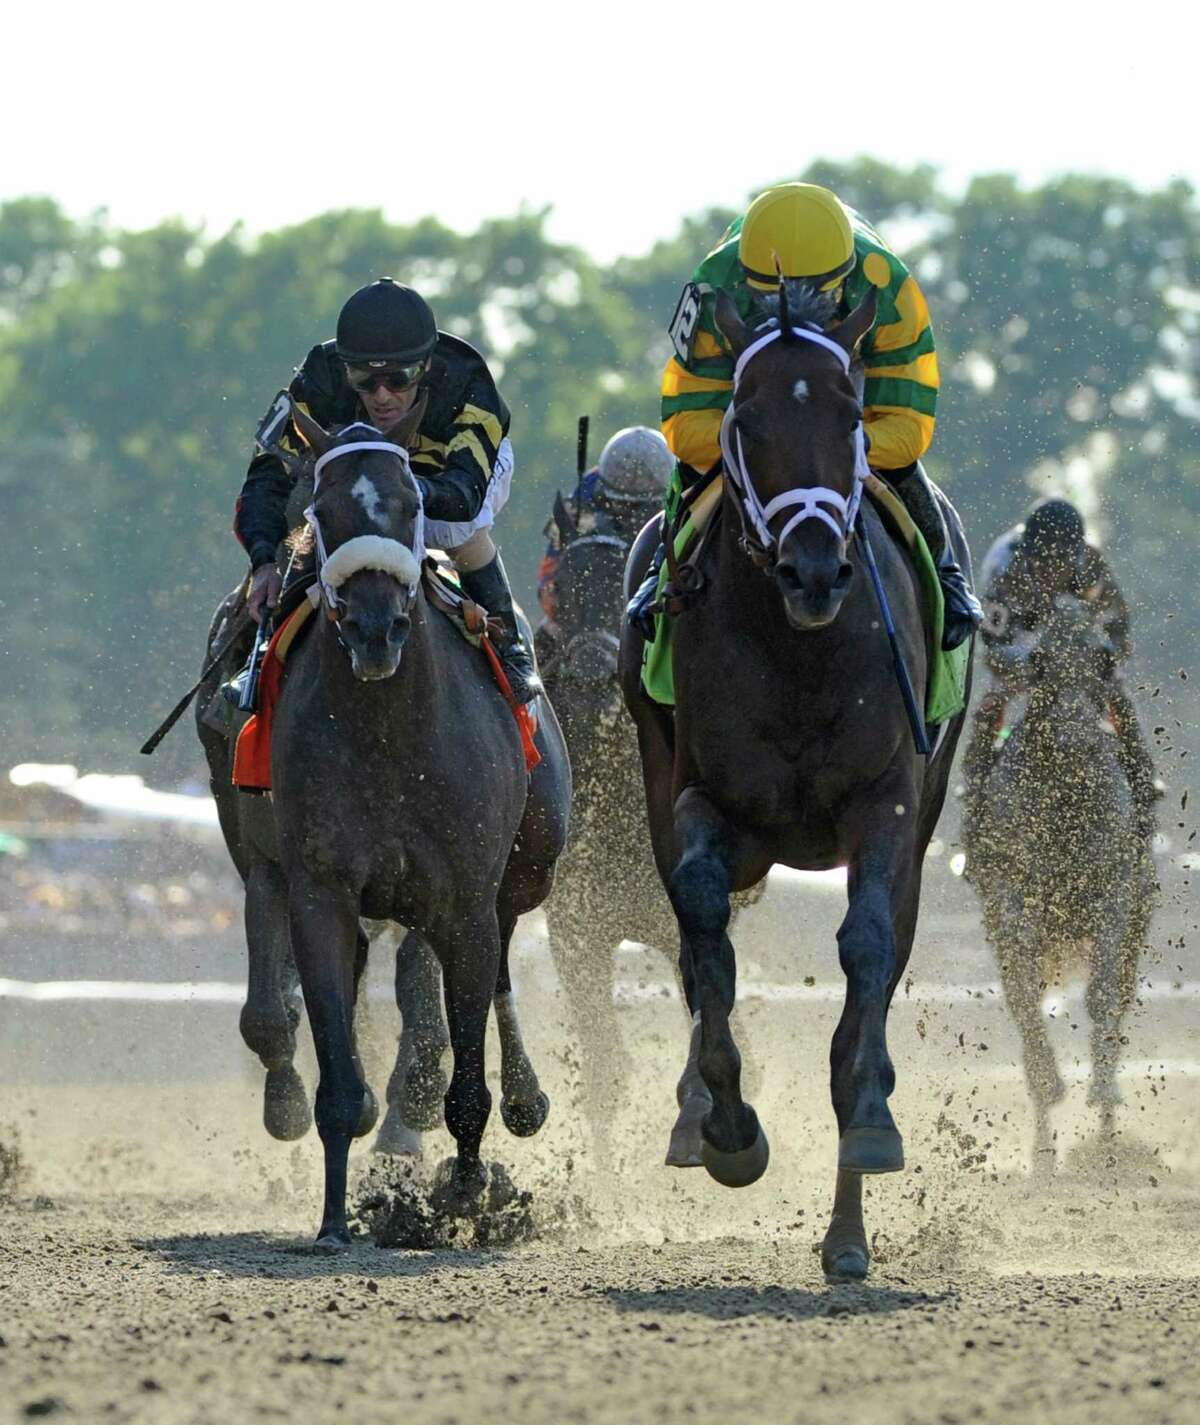 Jockey Mike Smith guides Palace Malice, right, to the win in the 145th running of The Belmont Stakes June 8, 2013 at Belmont Park in Elmont, N.Y. Second place went to Oxbow with jockey Gary Stevens aboard, left. (Skip Dickstein/Times Union)